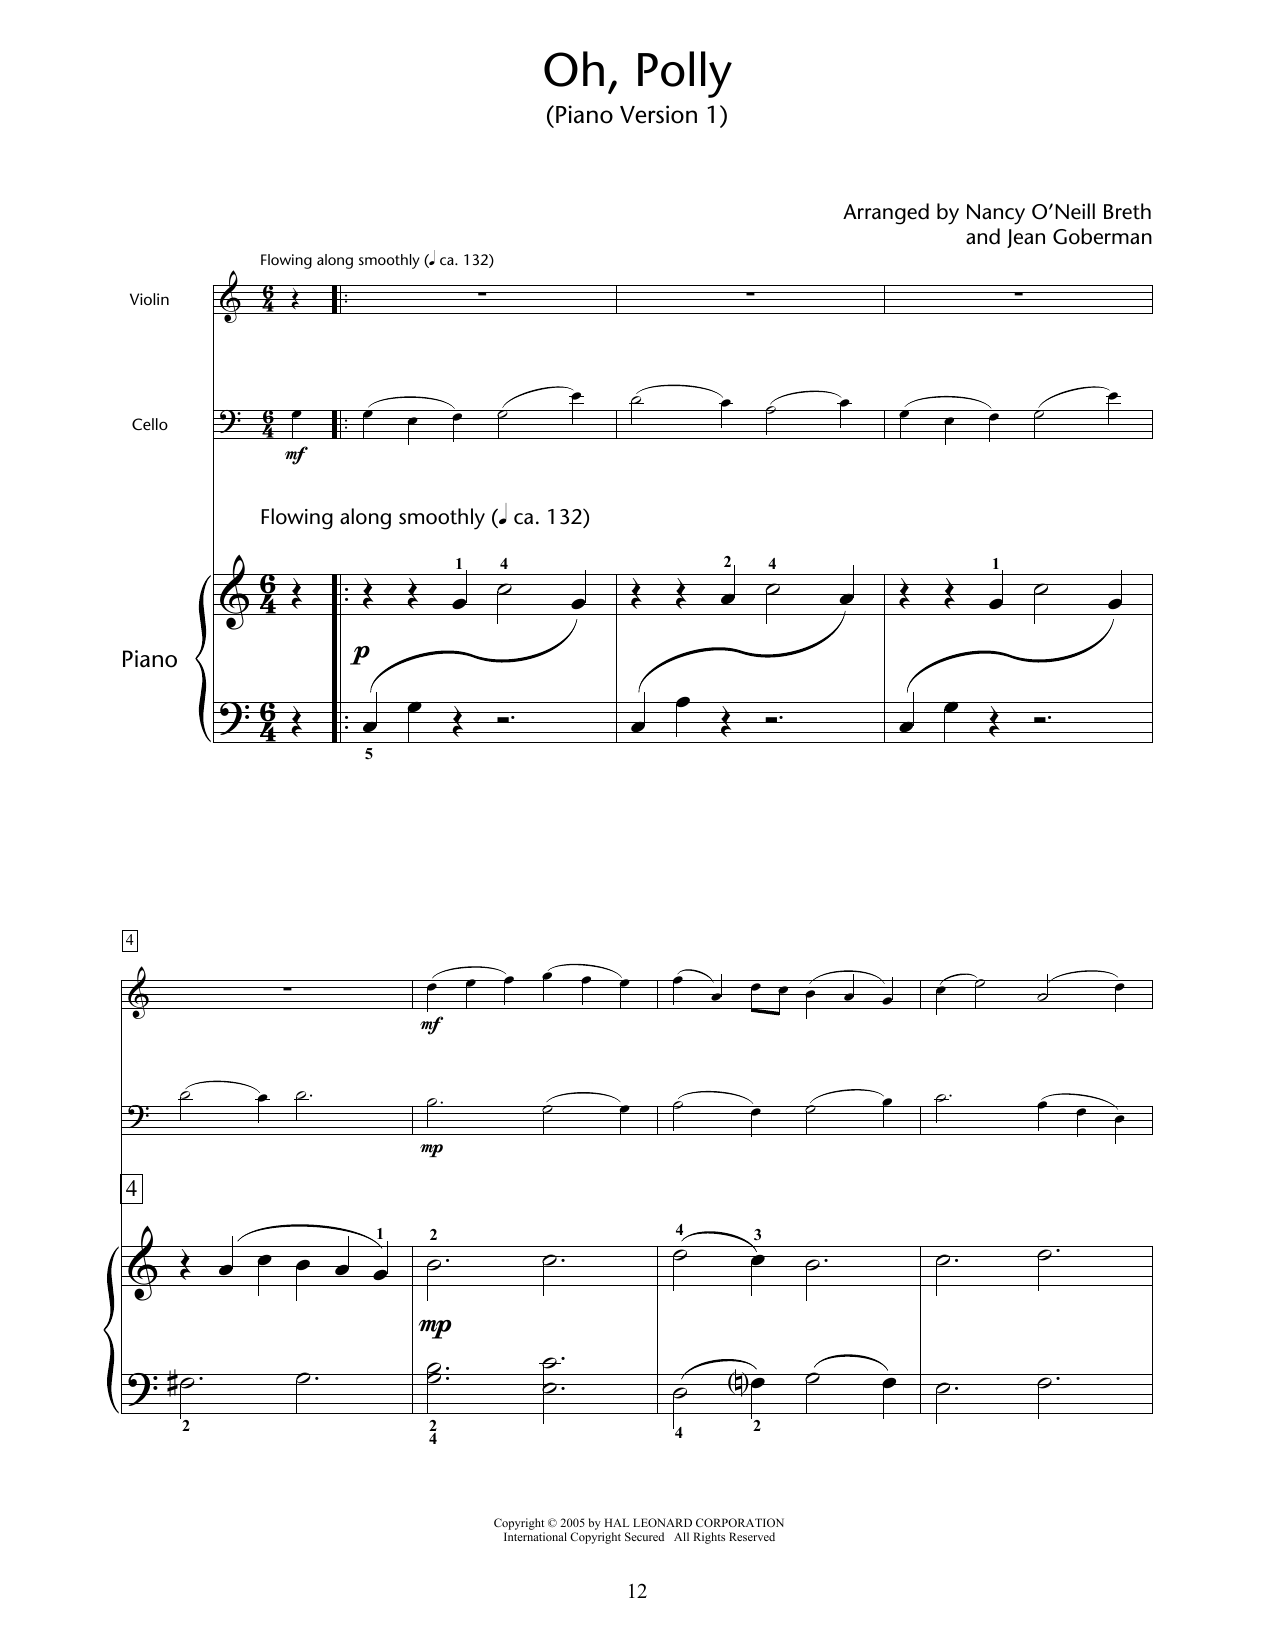 Download Nancy O'Neill Breth & Jean Goberman 'Oh, Polly' Digital Sheet Music Notes & Chords and start playing in minutes